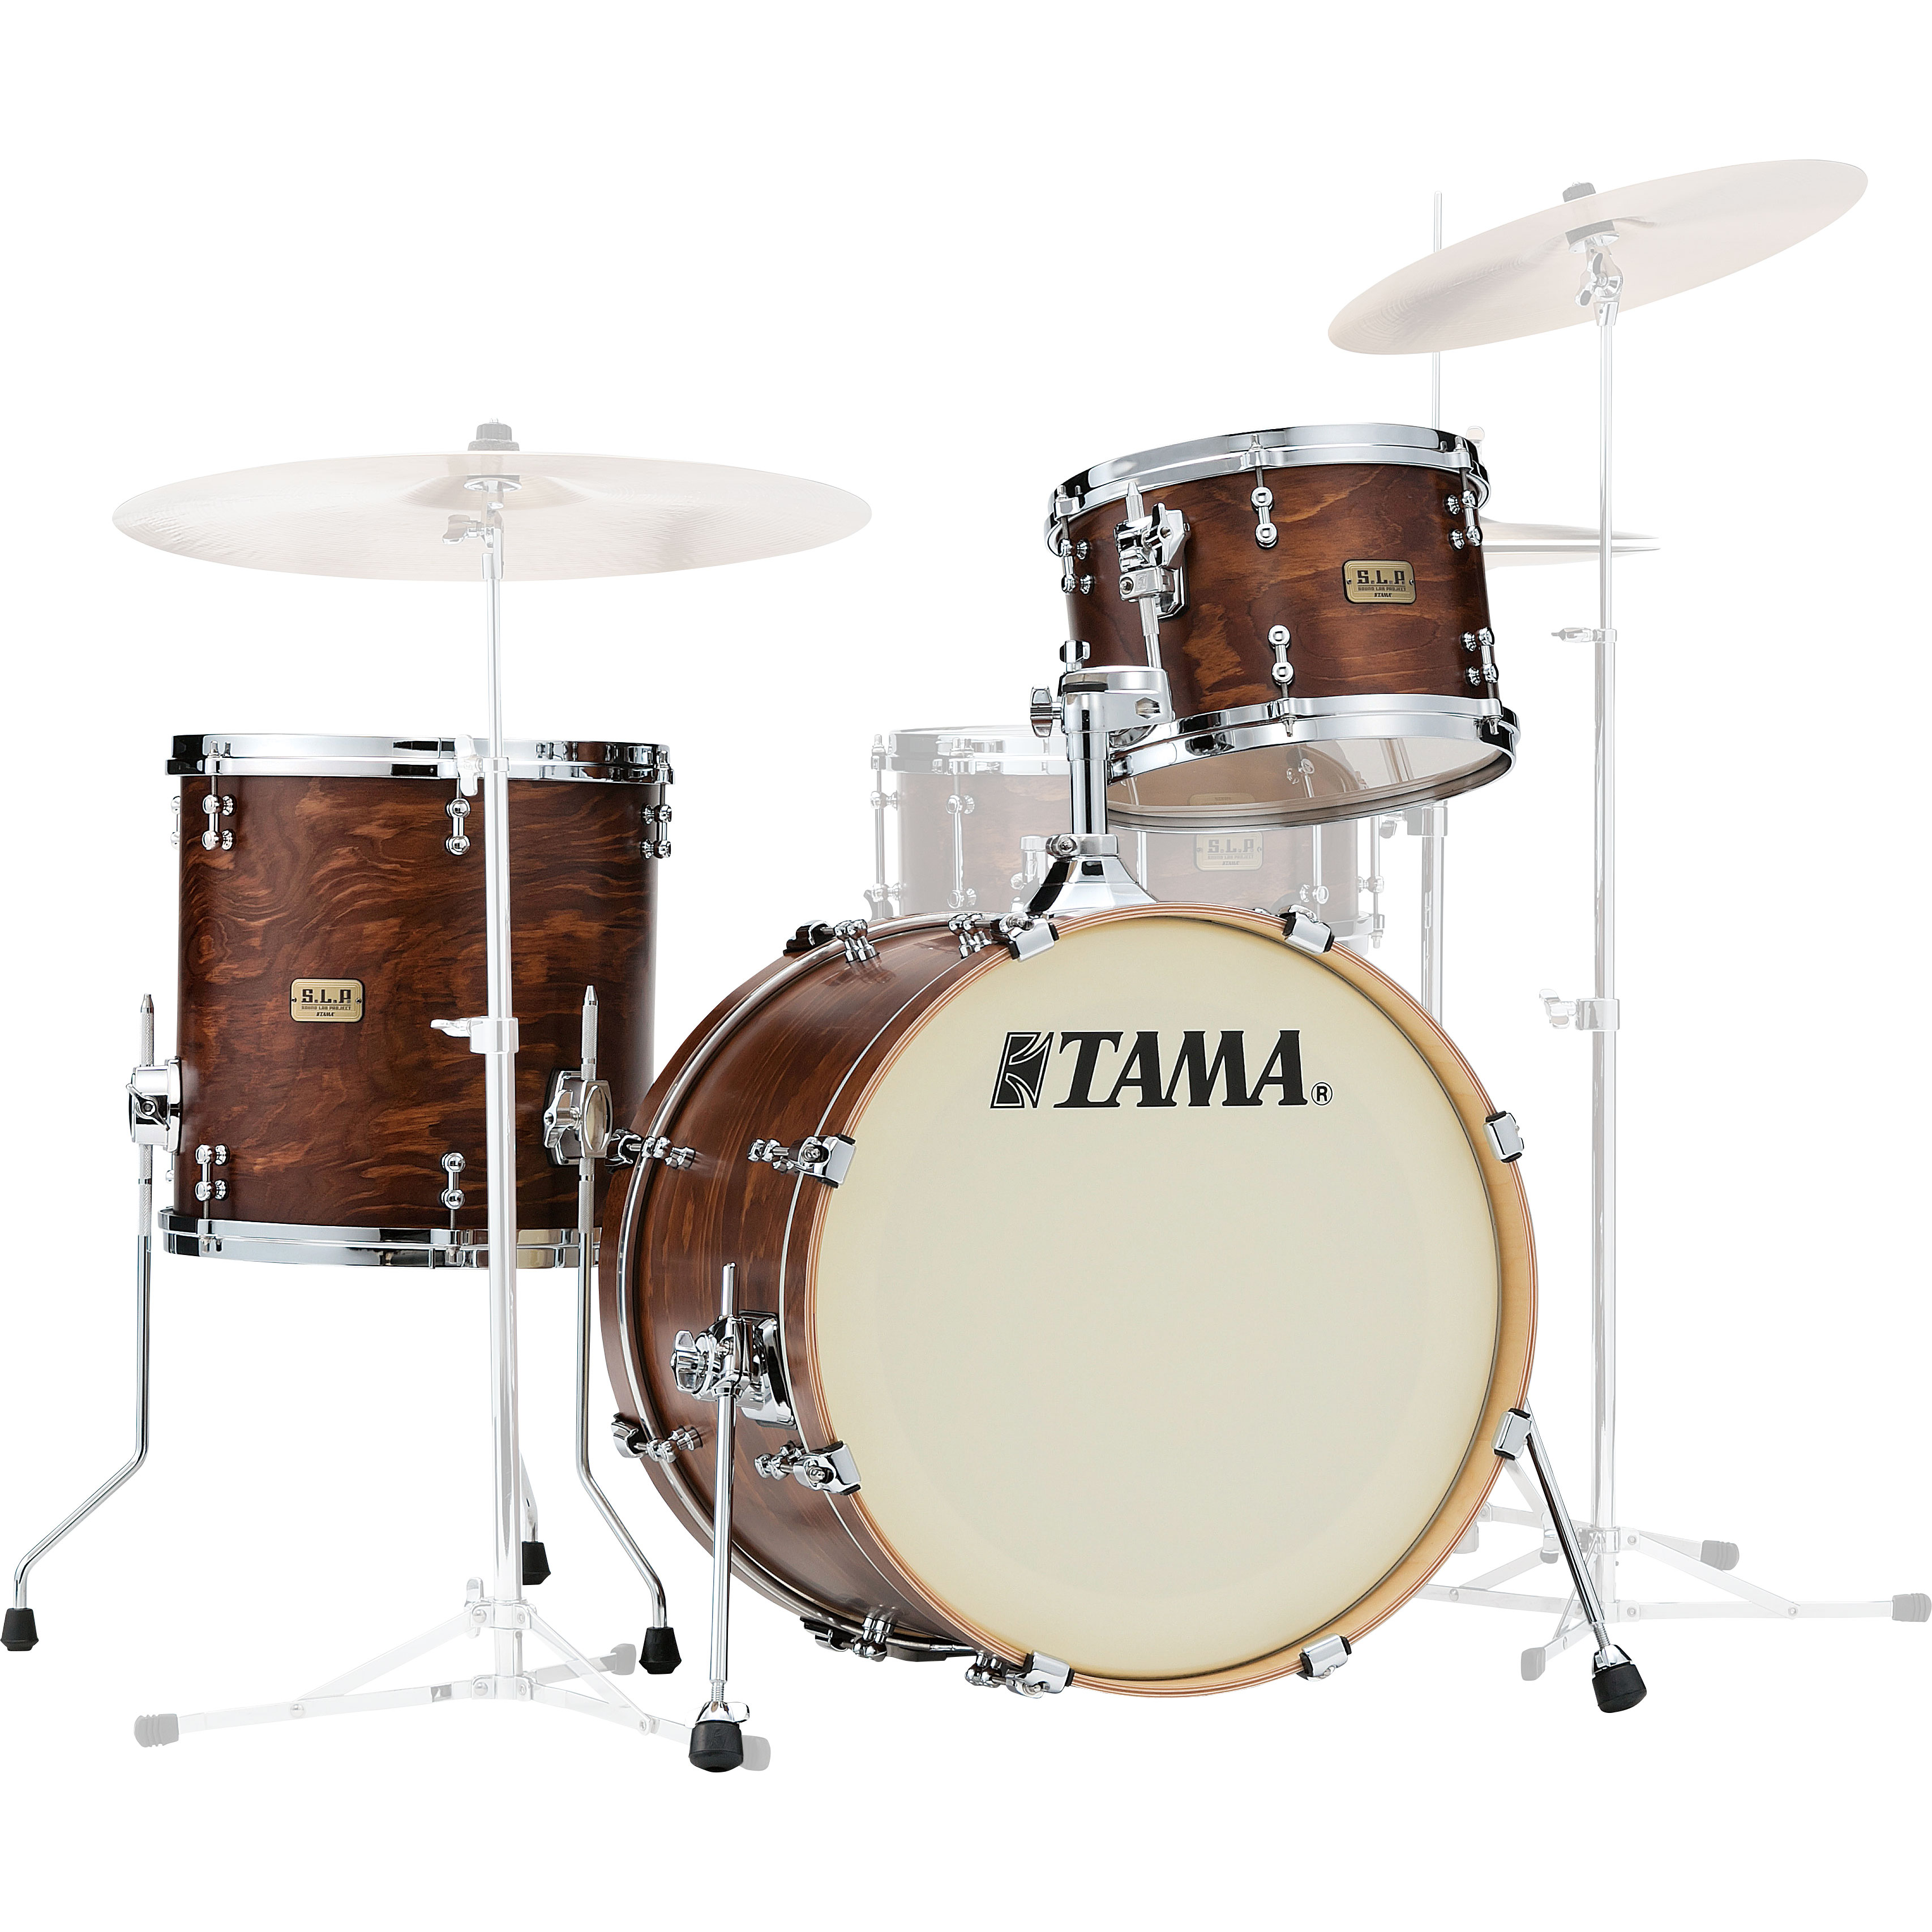 "Tama S.L.P. Fat Spruce 3-Piece Drum Set Shell Pack (20"" Bass, 12/14"" Toms) in Satin Wild Spruce"